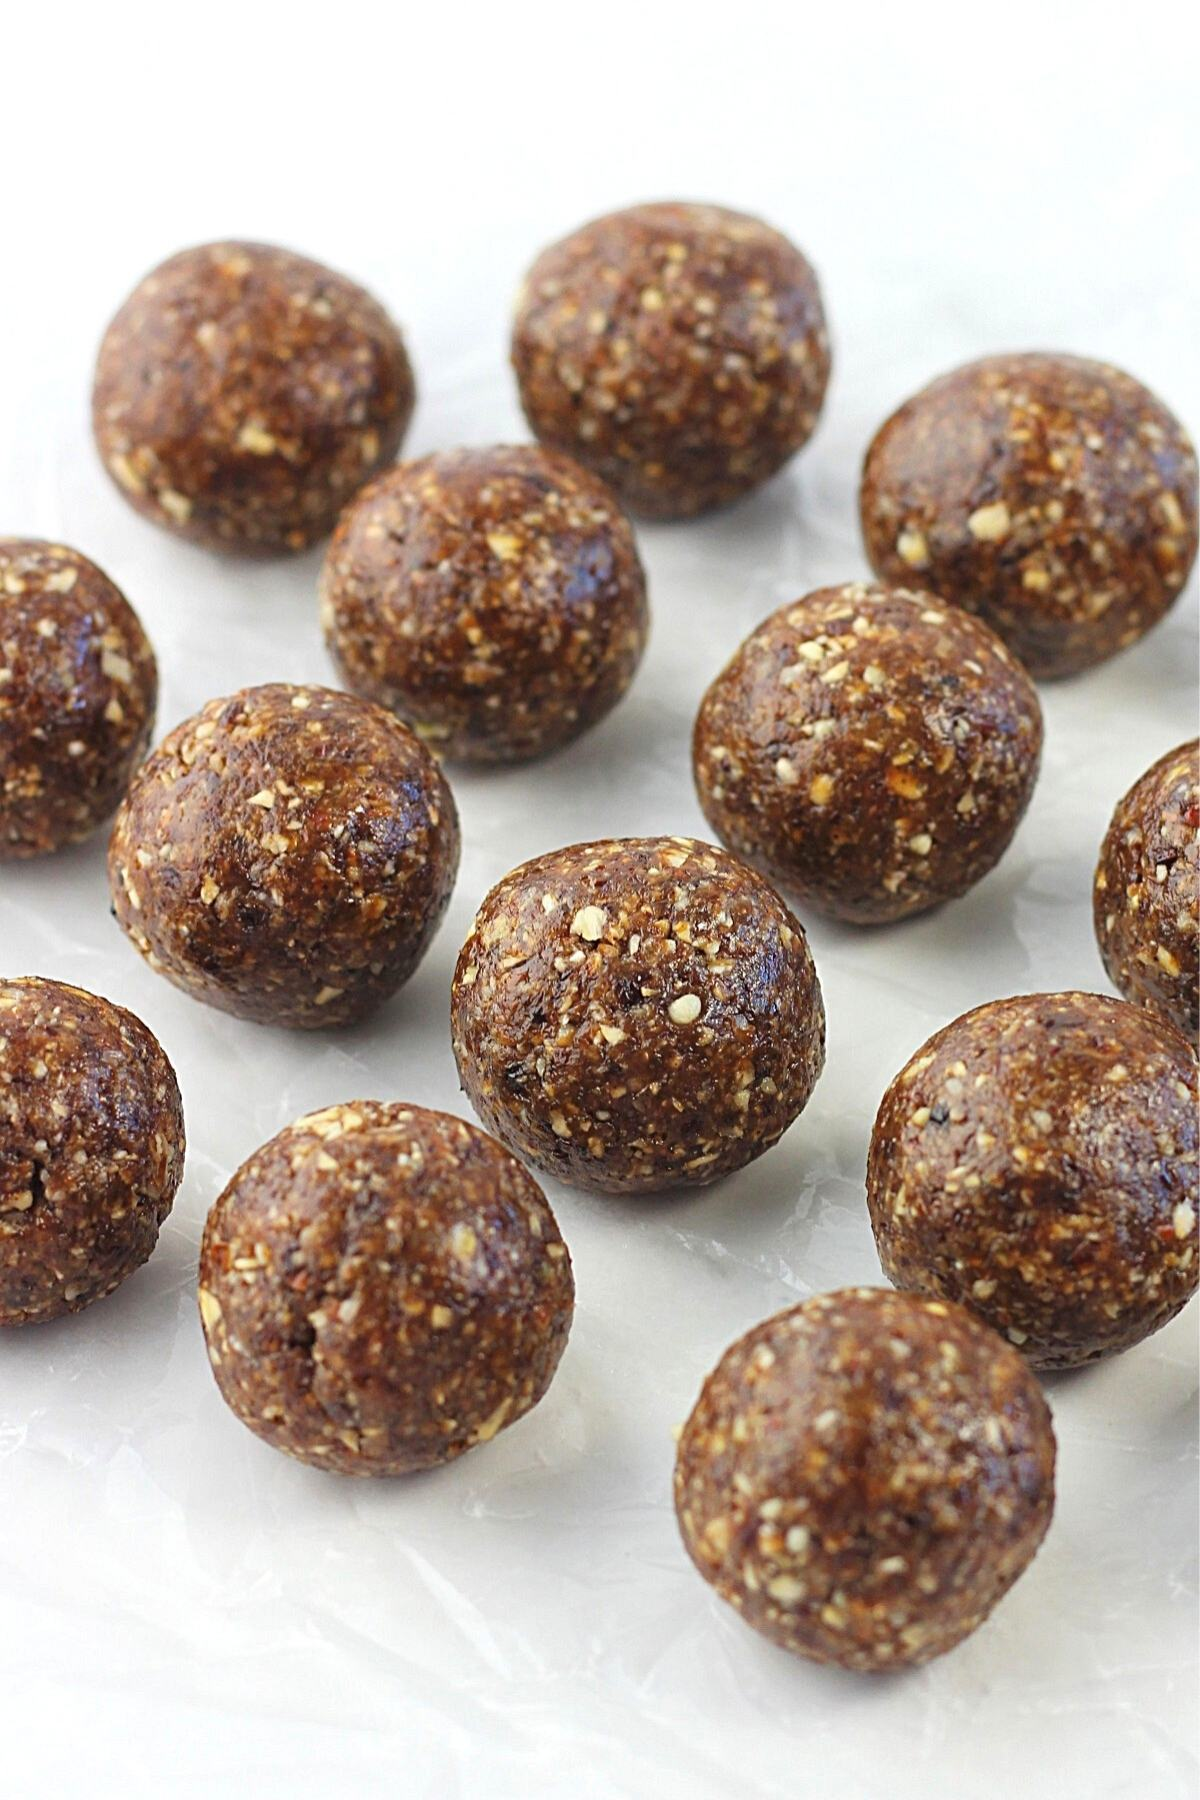 several oatmeal, raisin and pecan energy bites on a white surface